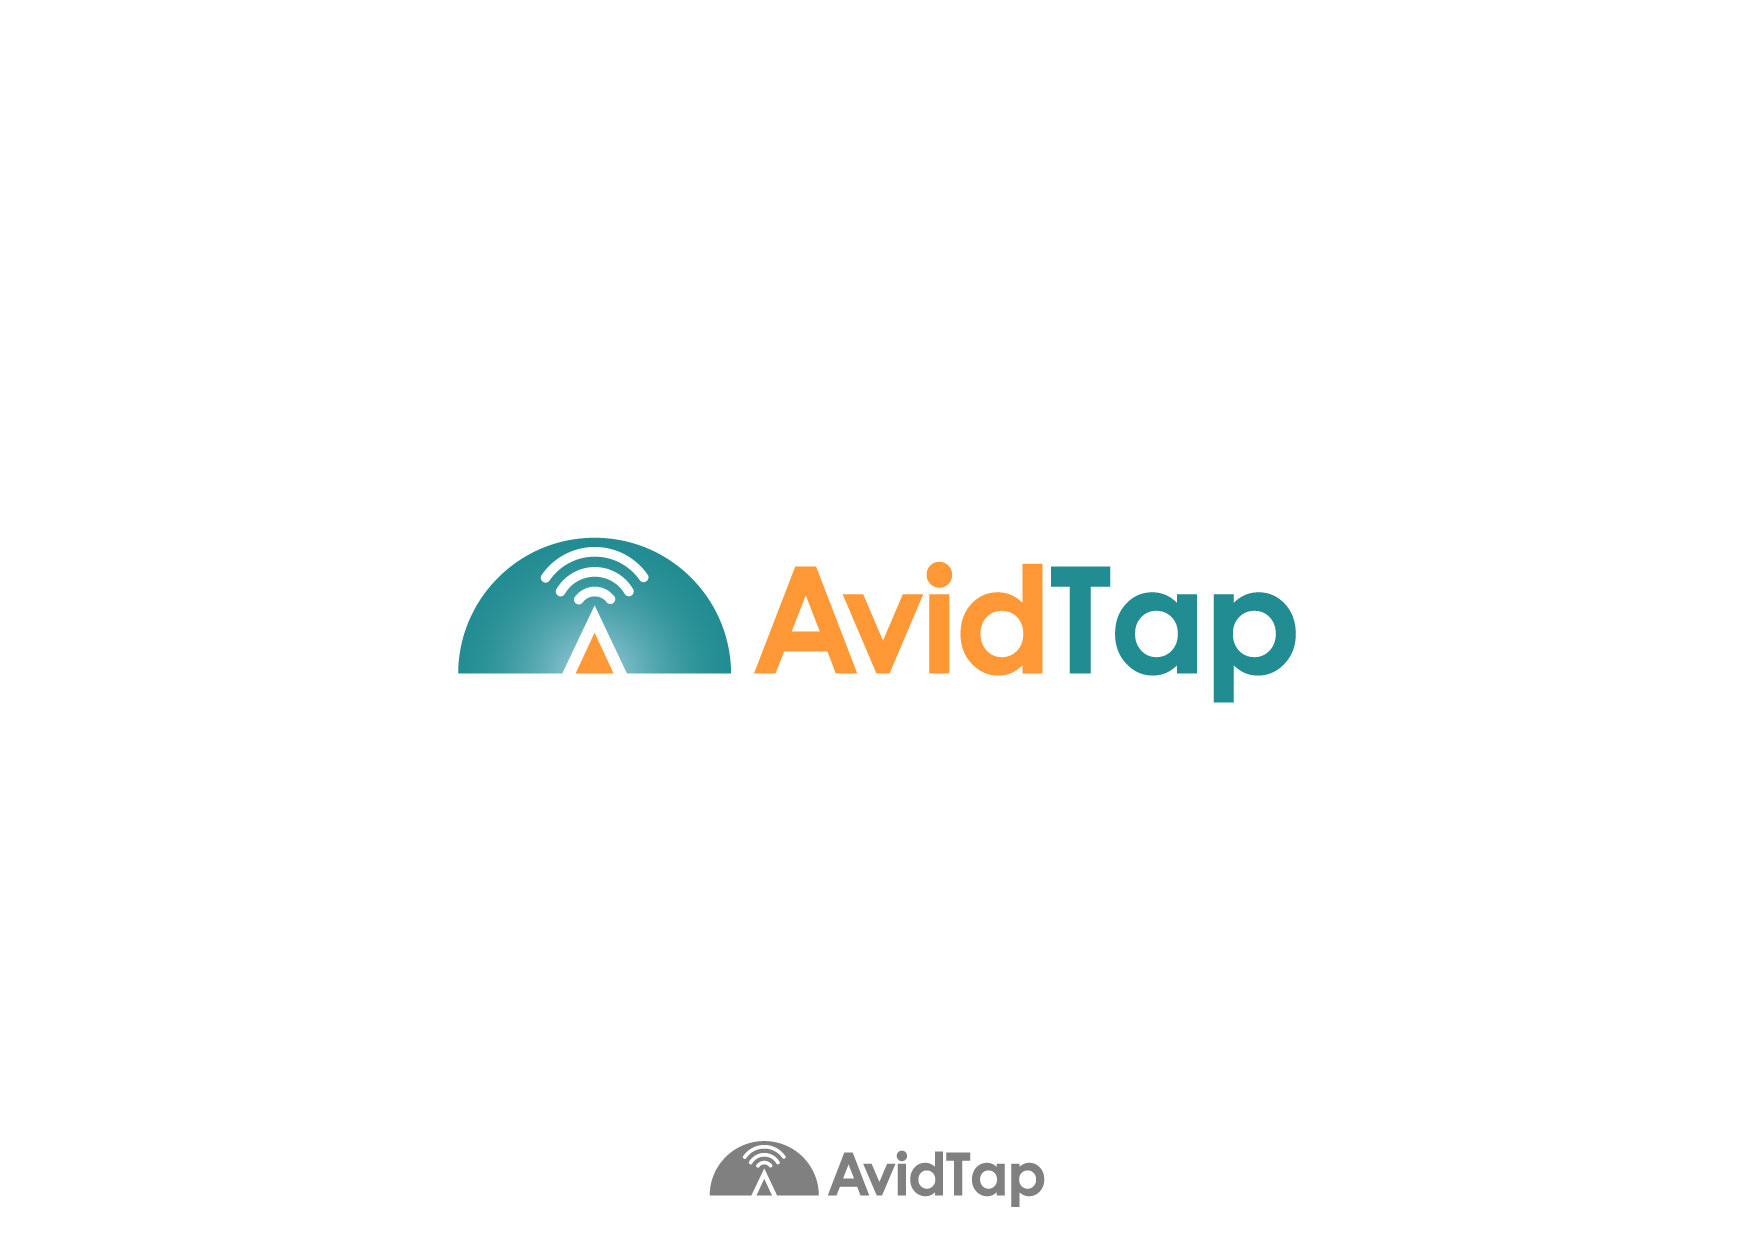 Logo Design by Nurgalih Destianto - Entry No. 64 in the Logo Design Contest Imaginative Logo Design for AvidTap.